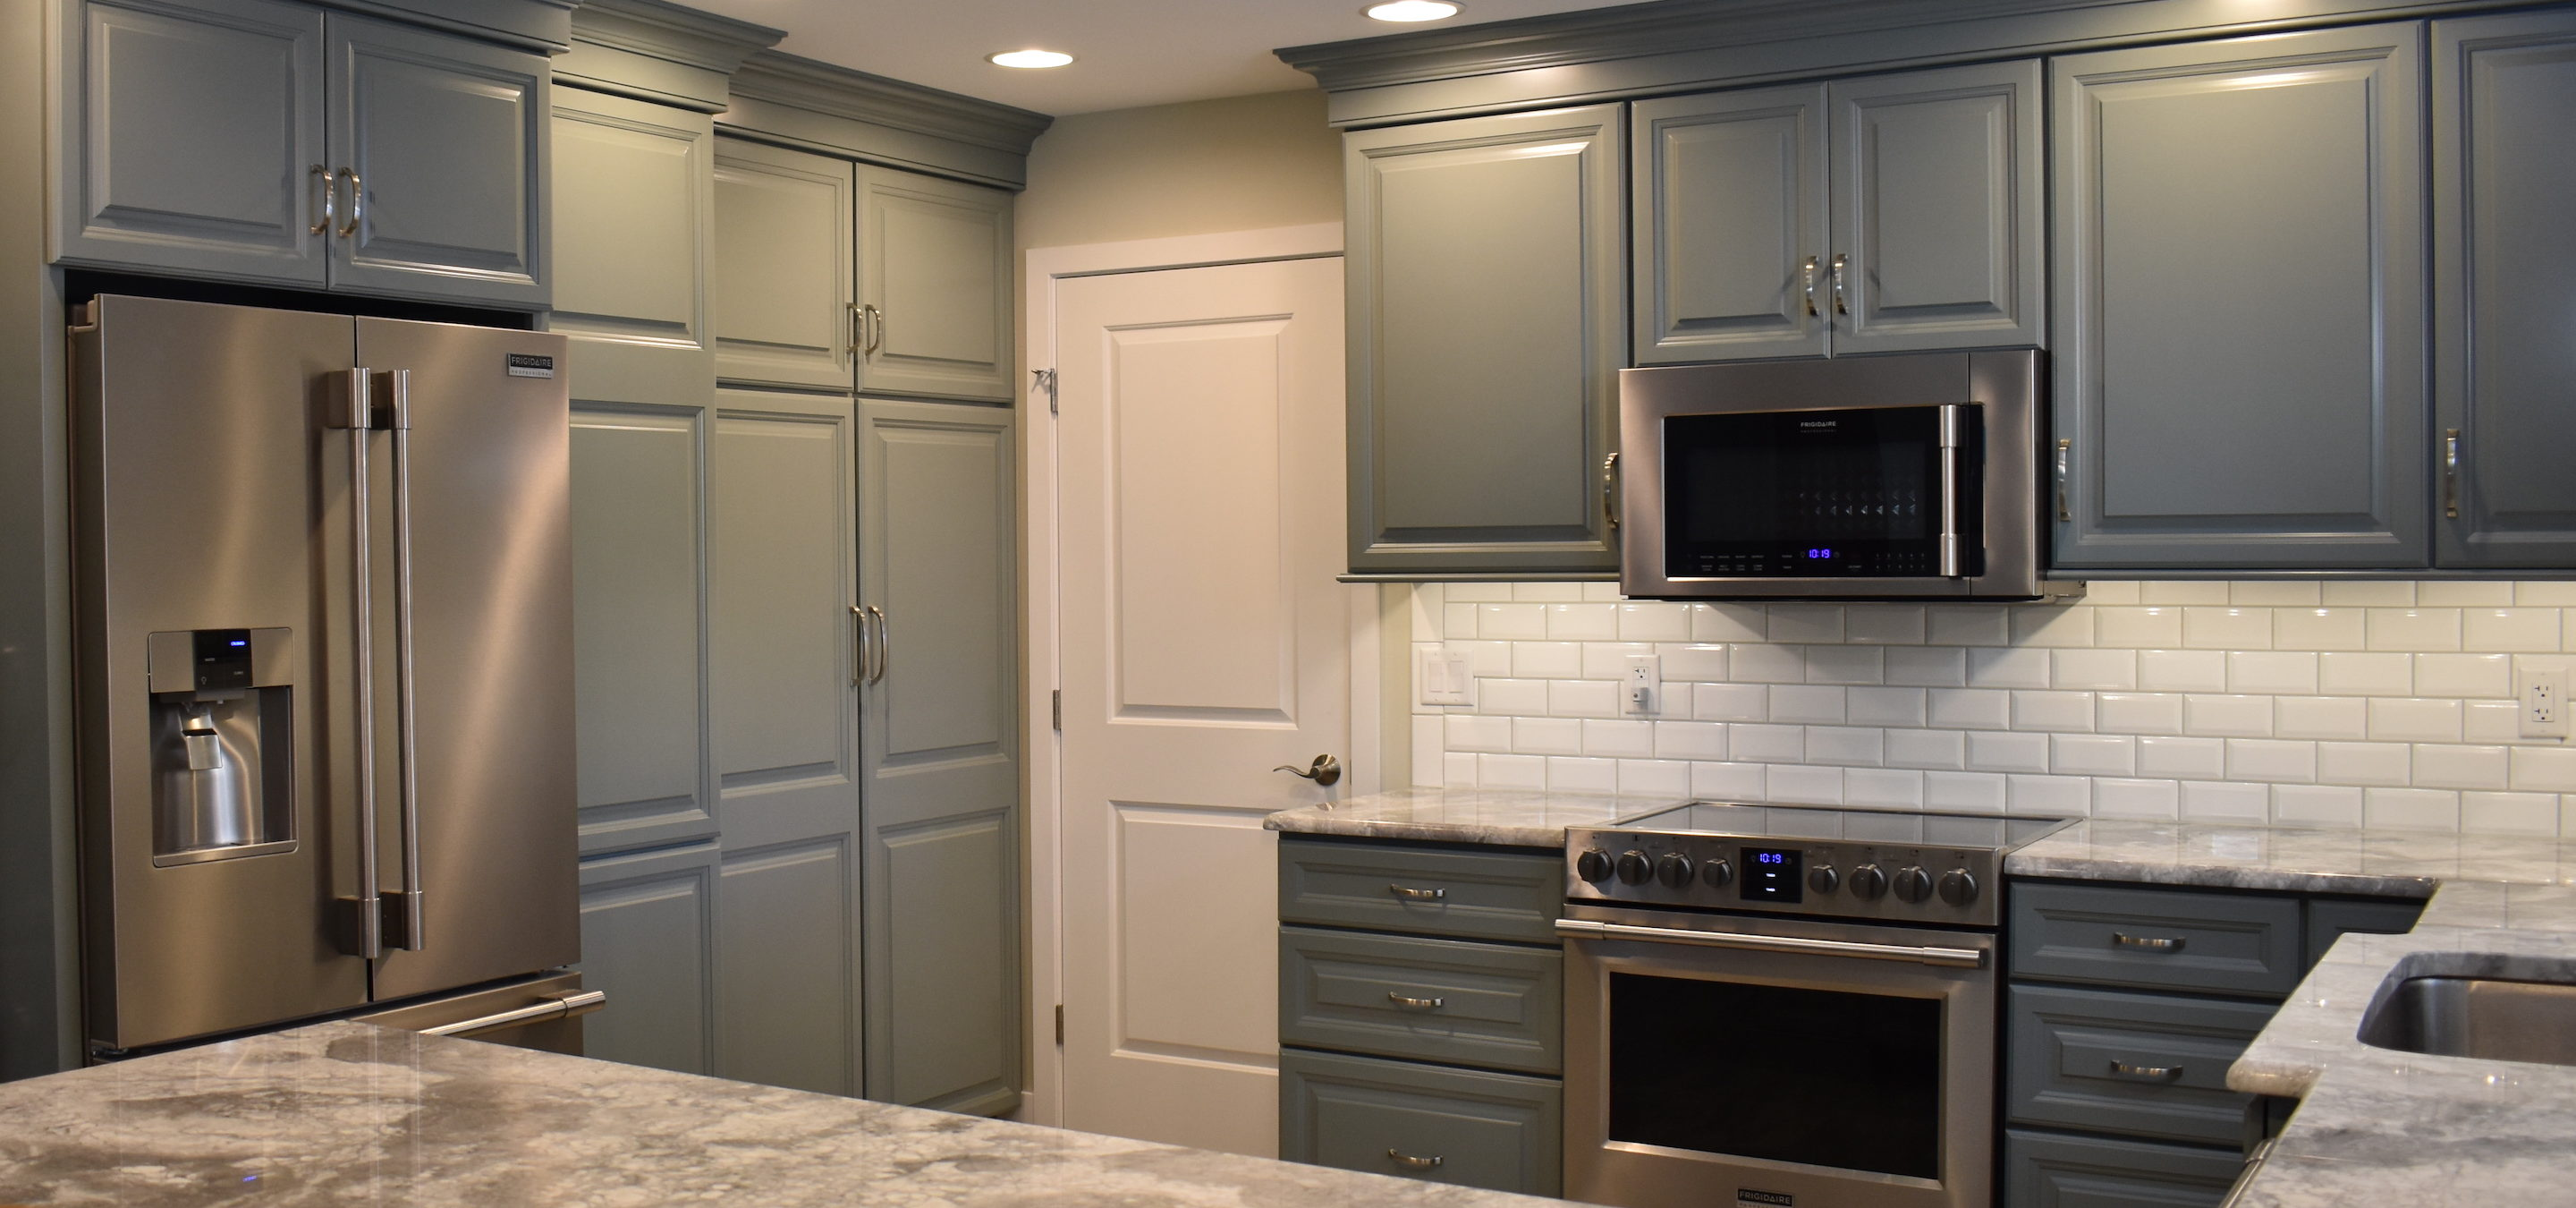 Kitchen Remodel With Custom Green Cabinets